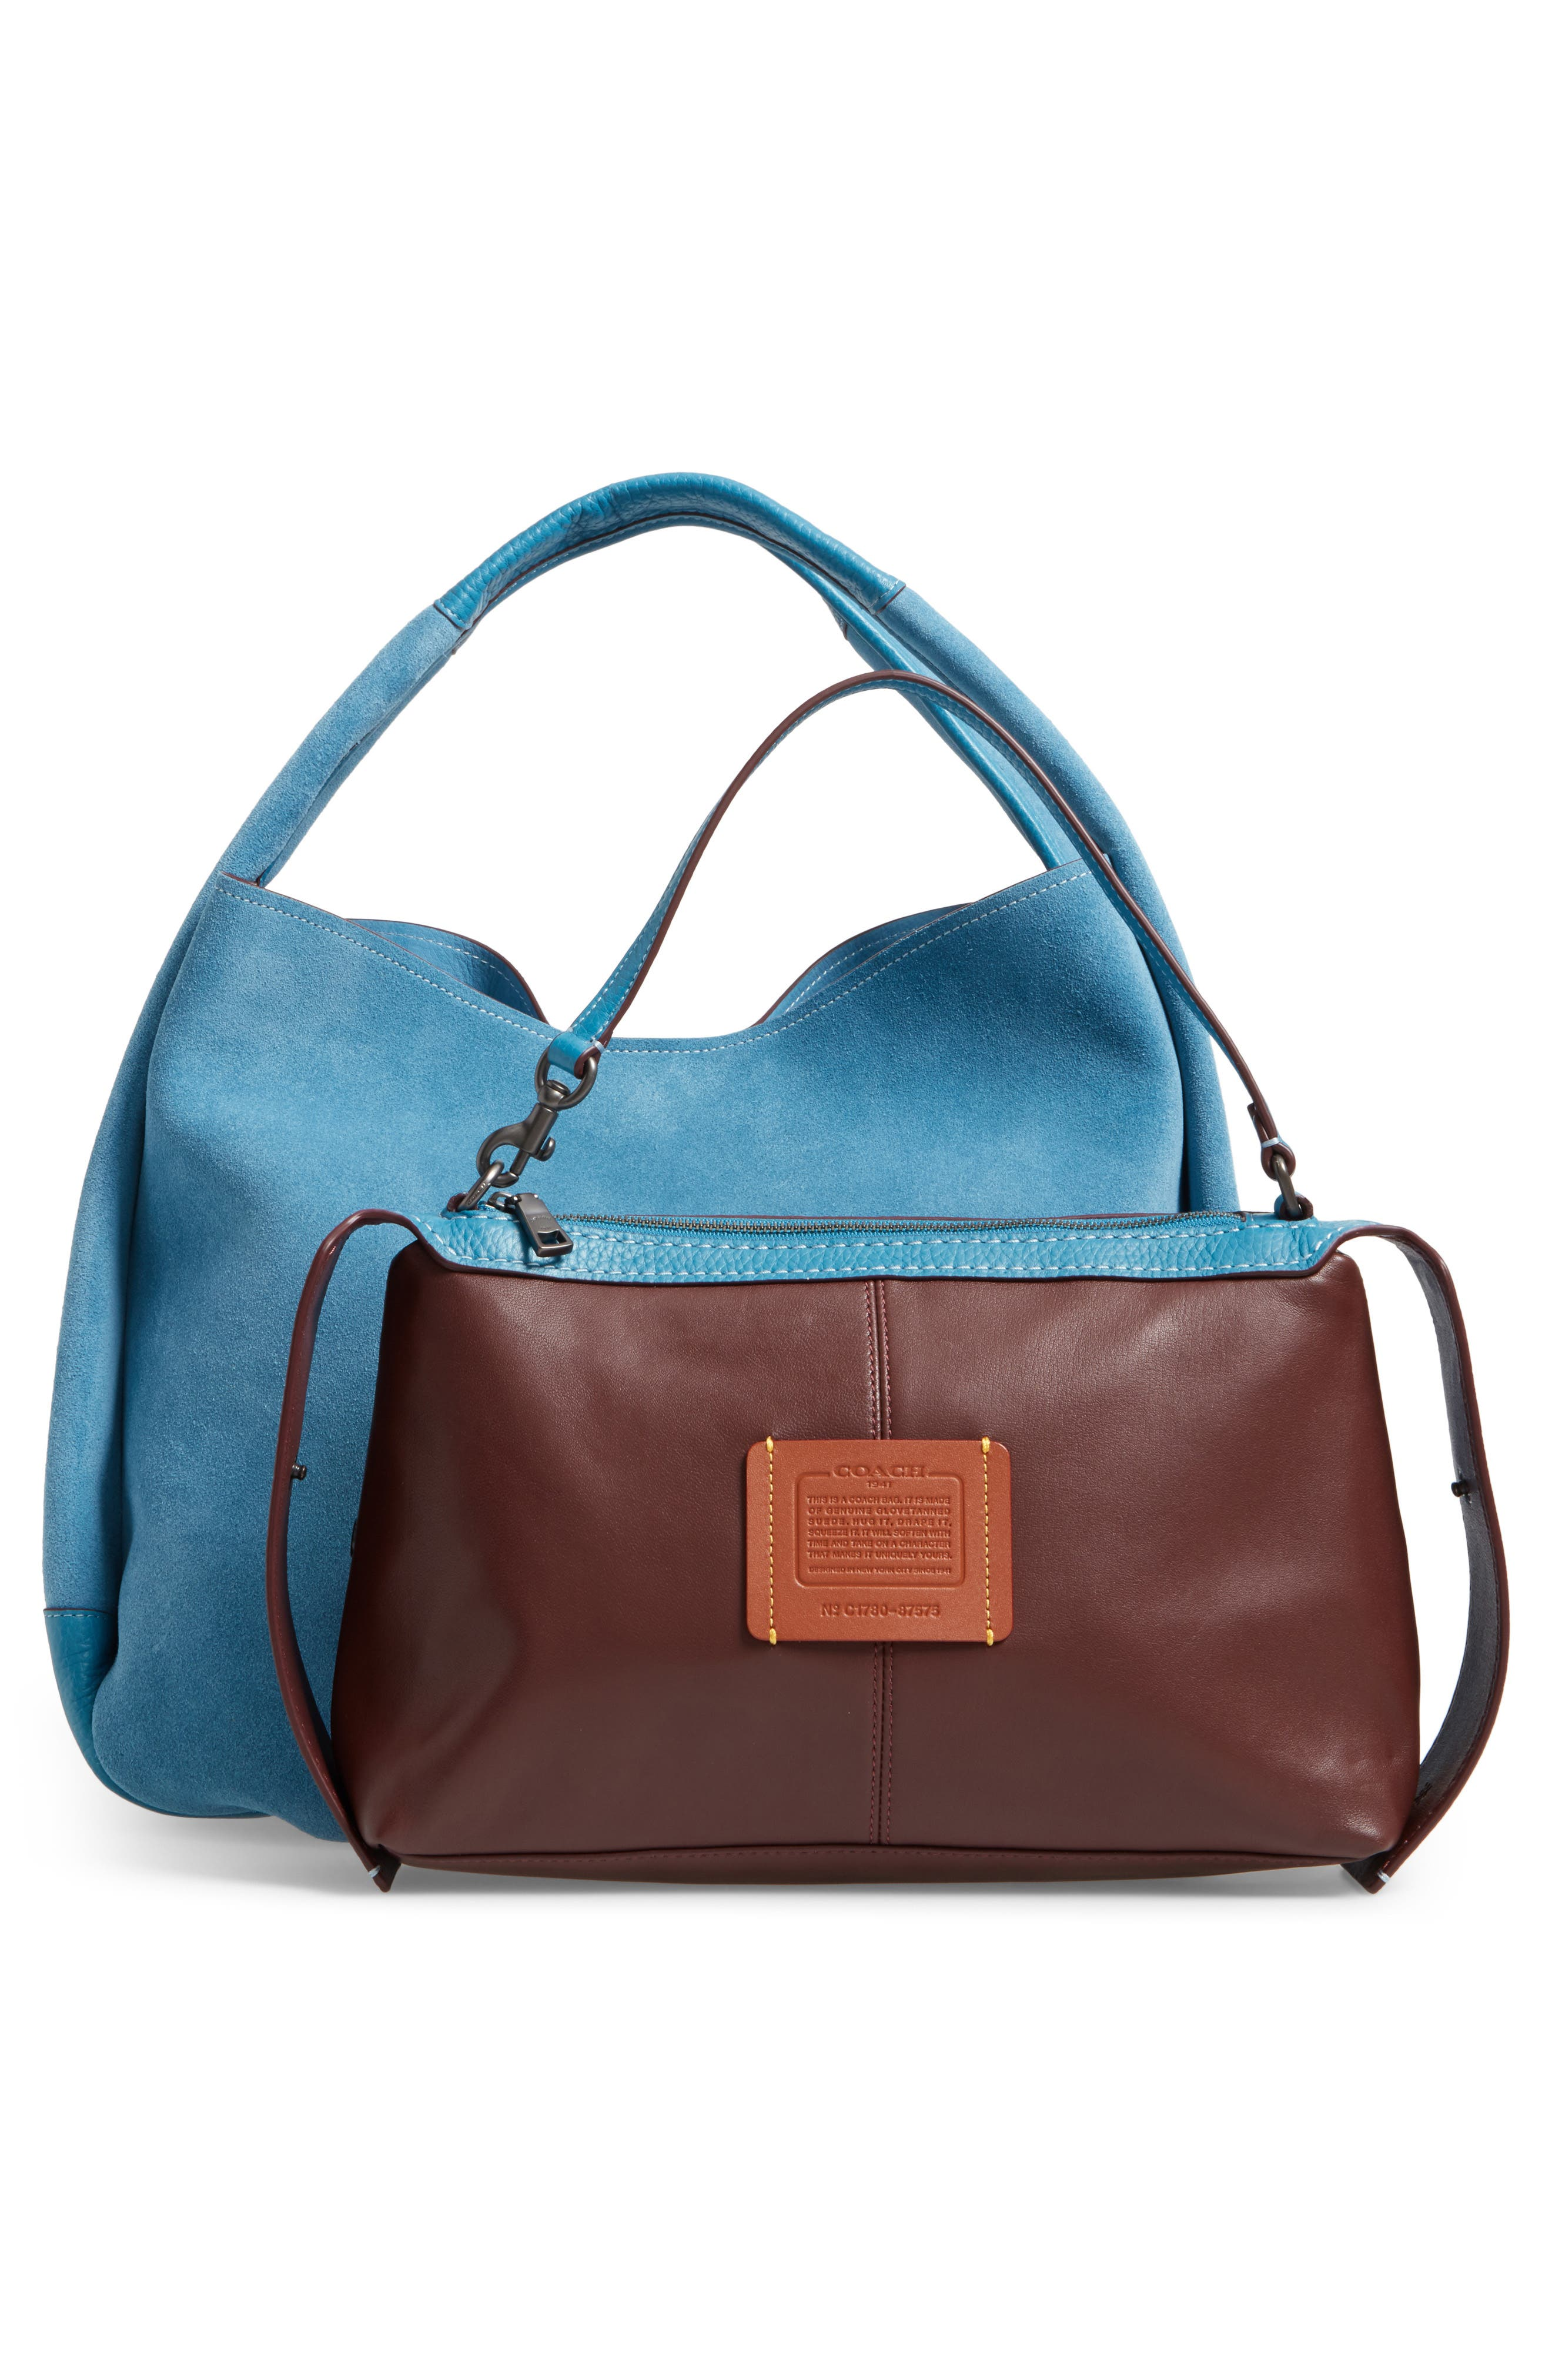 Bandit Suede Hobo & Removable Shoulder Bag,                             Alternate thumbnail 3, color,                             453